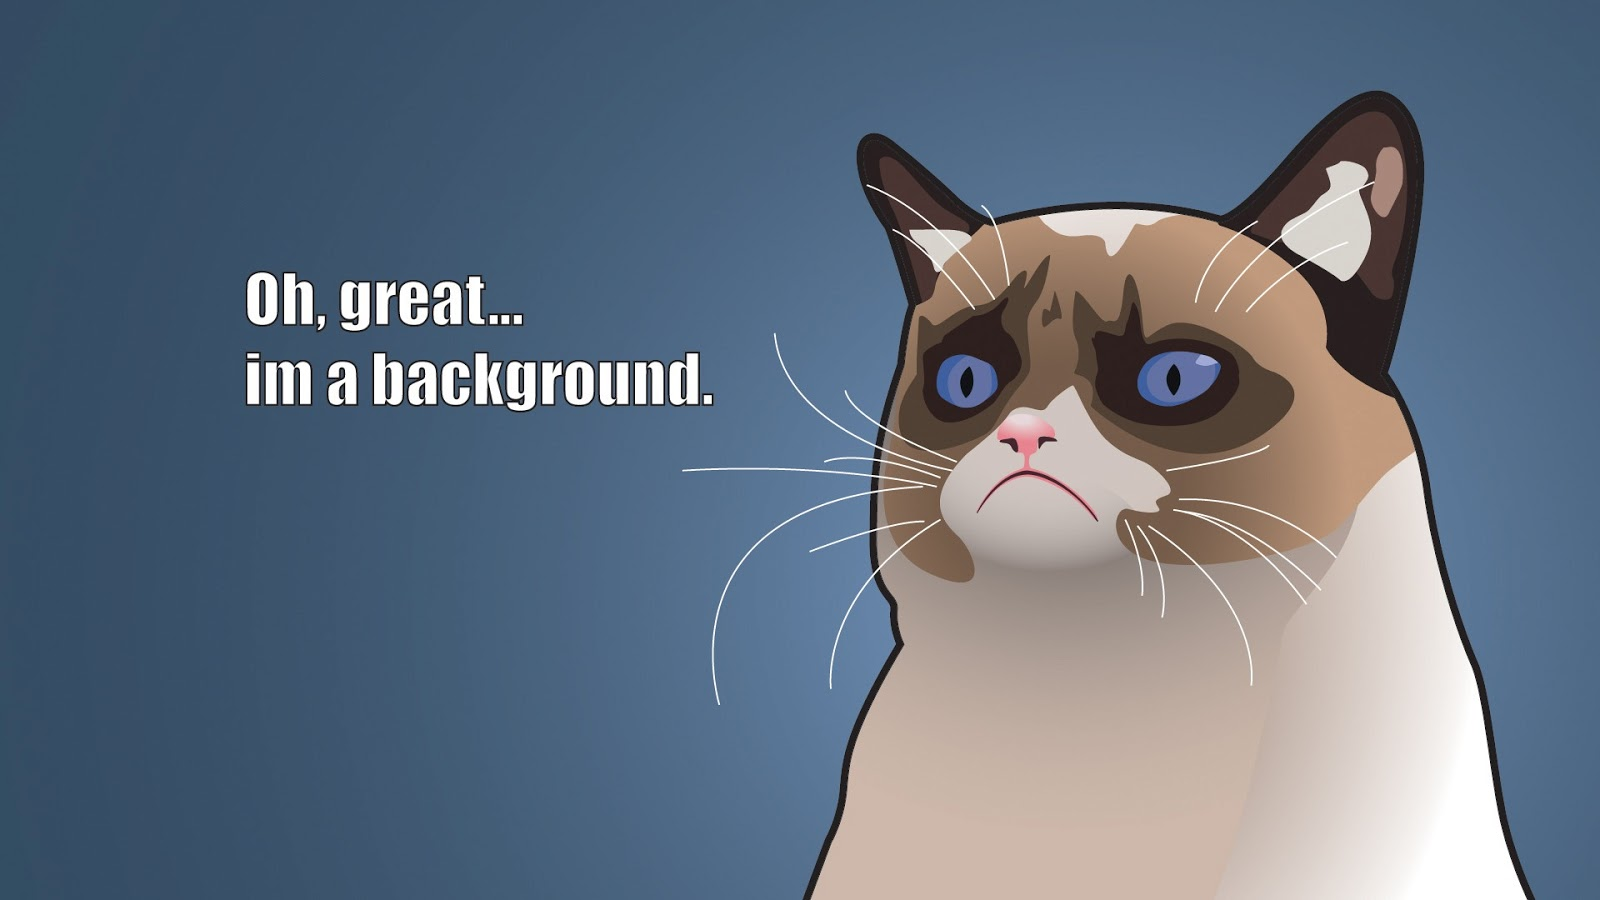 angry cat meme cartoon - photo #2